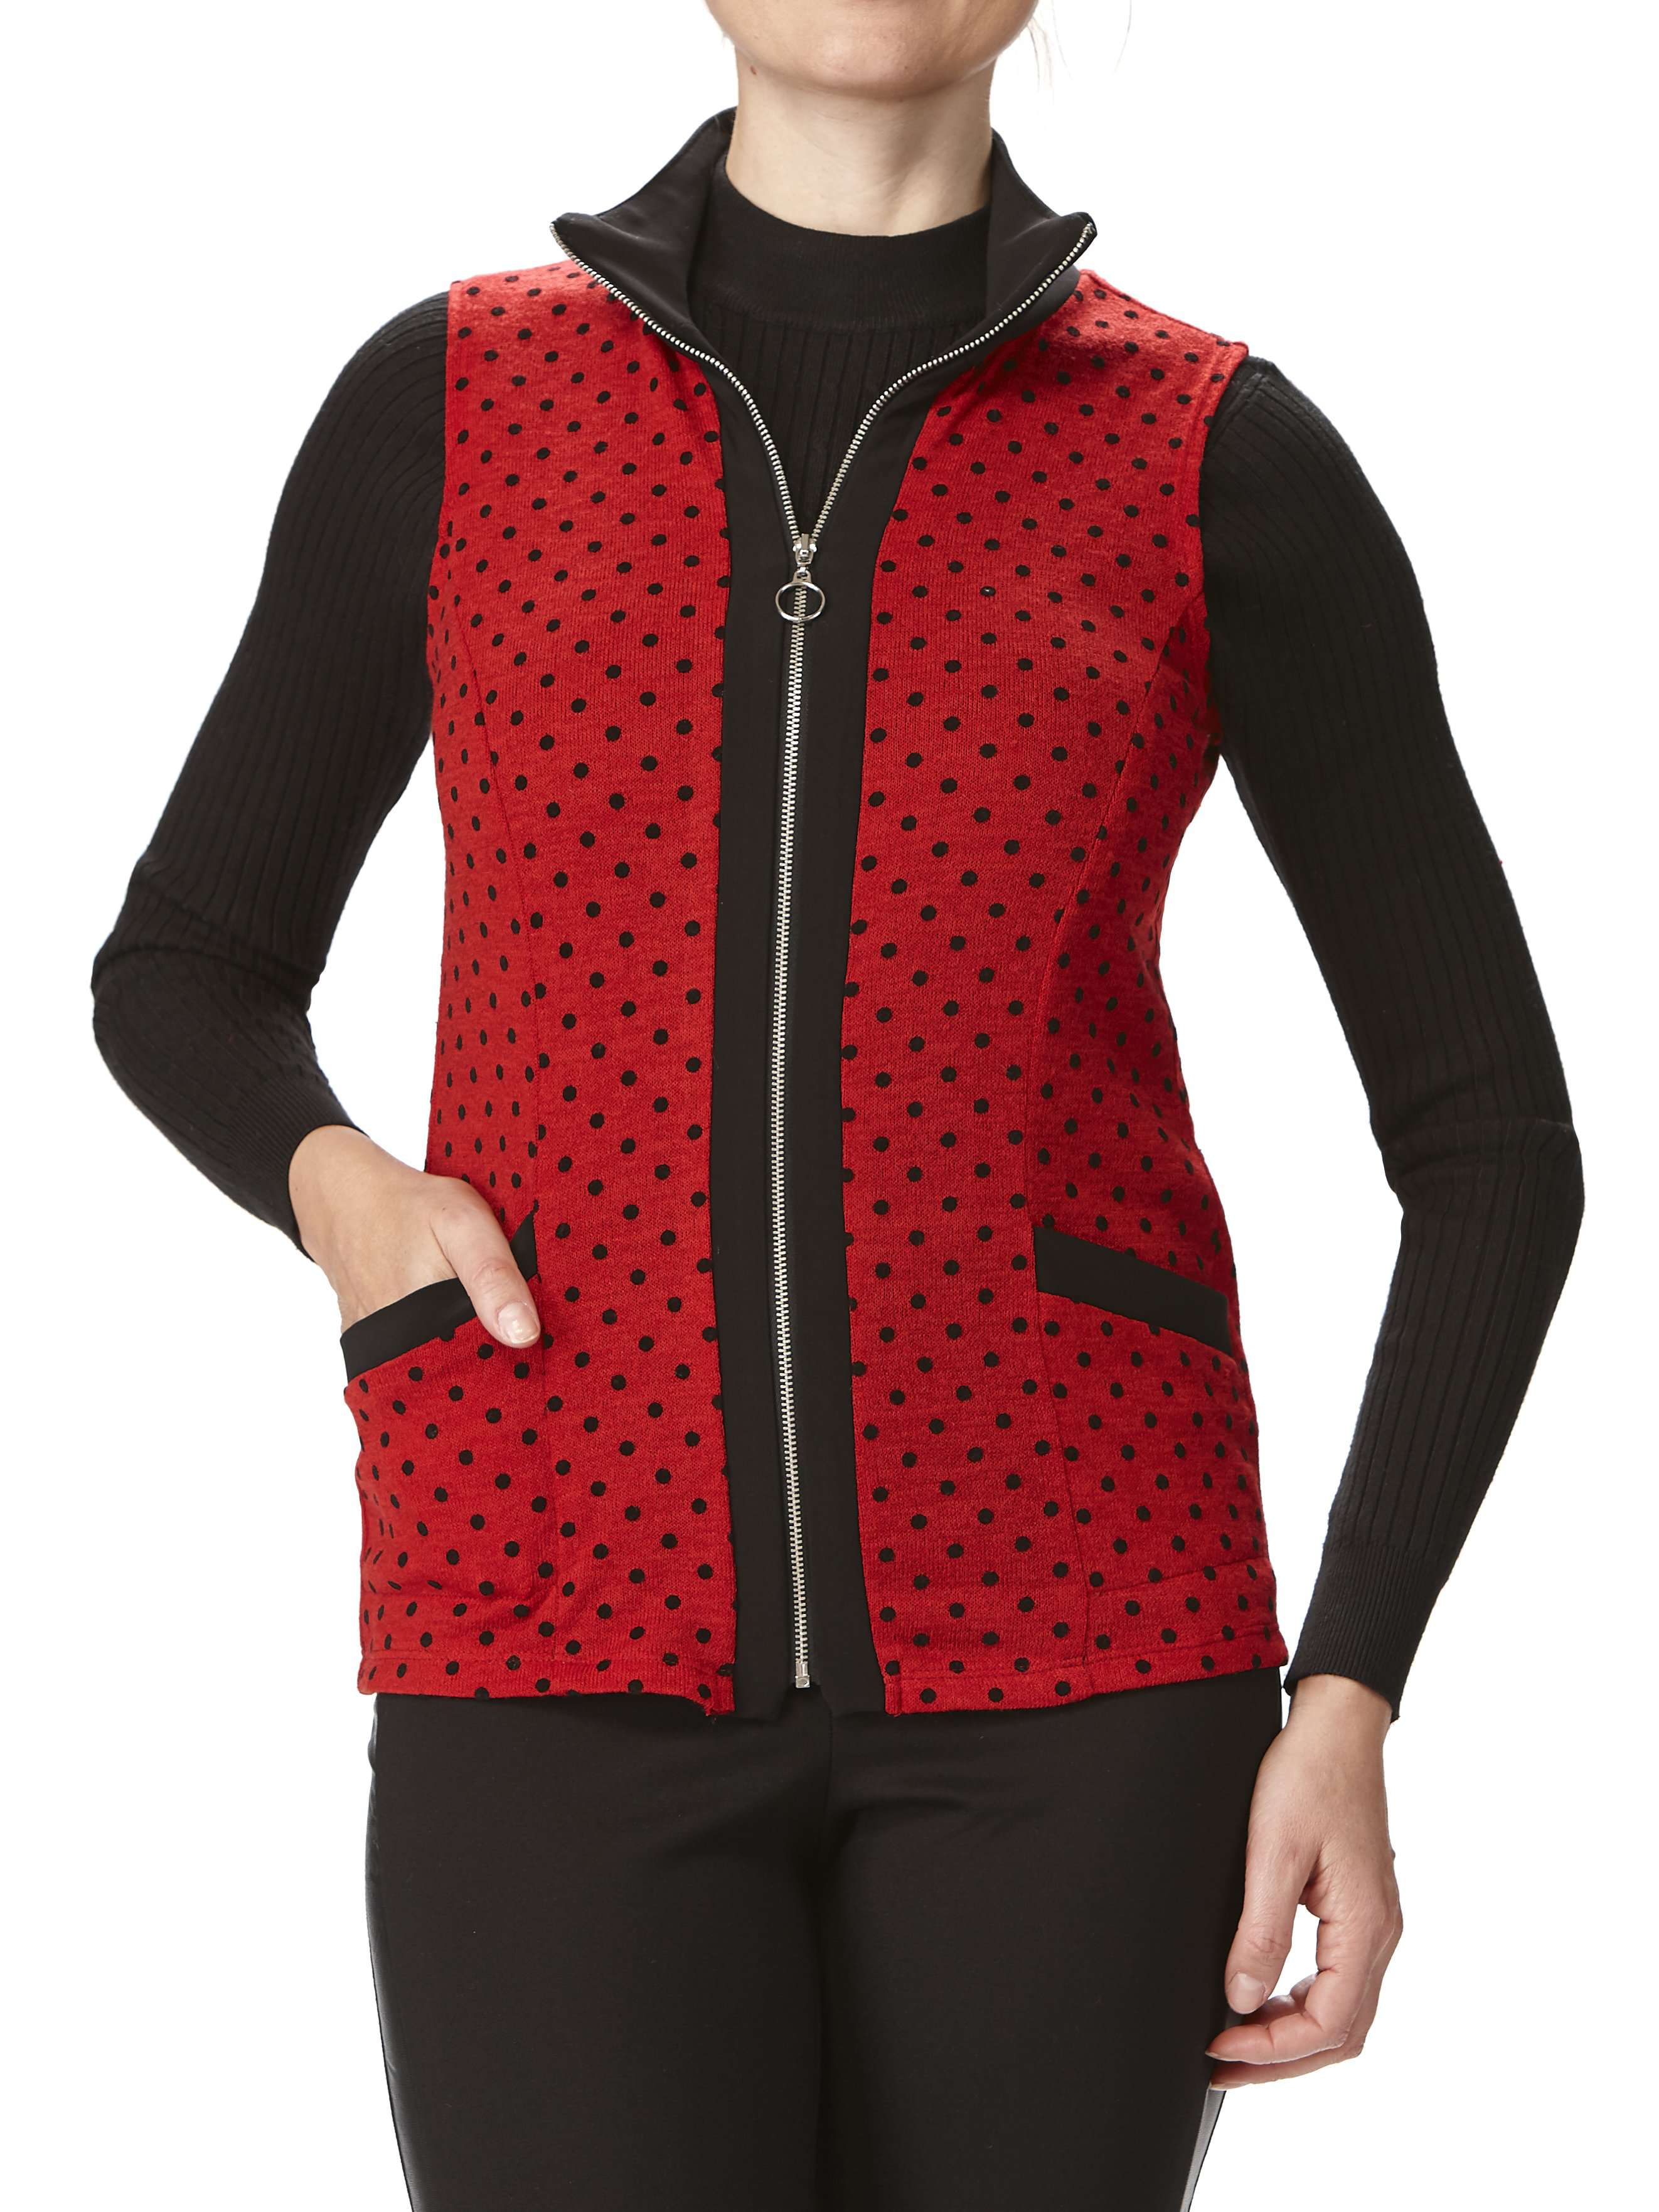 Women's Sleeveless Vest-Red - Made In Canada - Yvonne Marie - Yvonne Marie